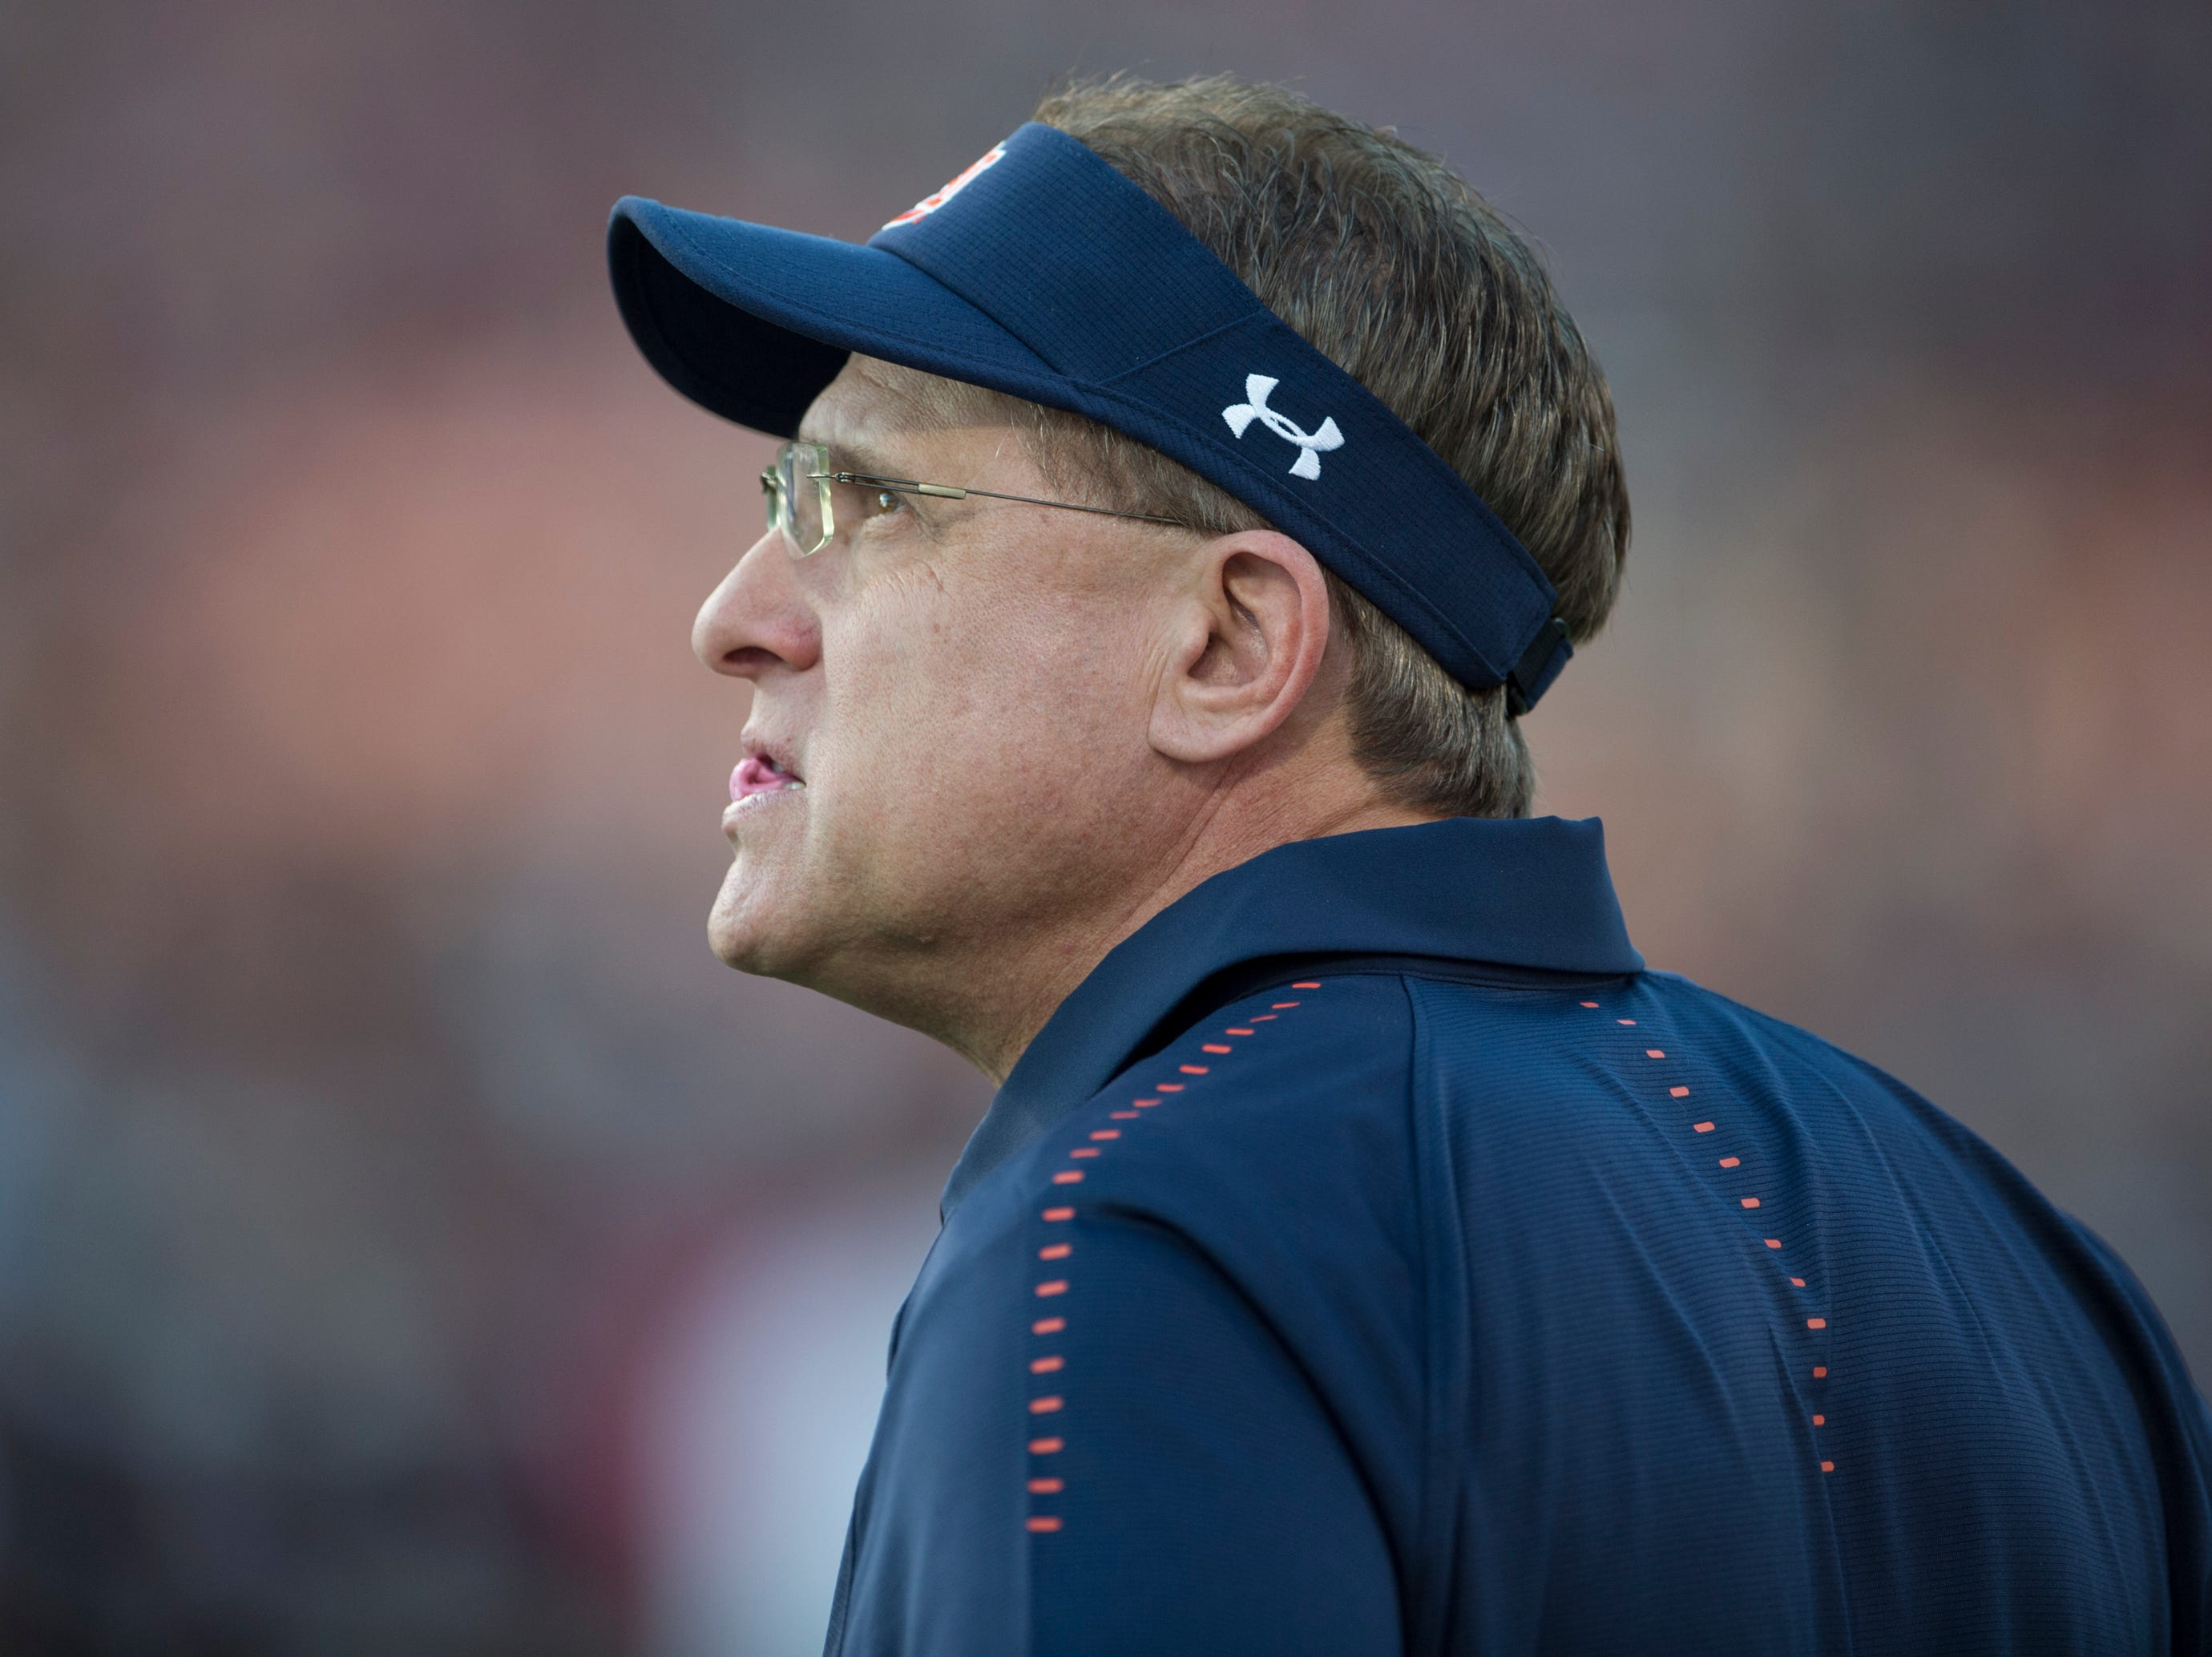 Auburn head coach Gus Malzahn chews gum as he watches his team warm up at Davis Wade Stadium in Starkville, Miss., on Saturday, Oct. 6, 2018.